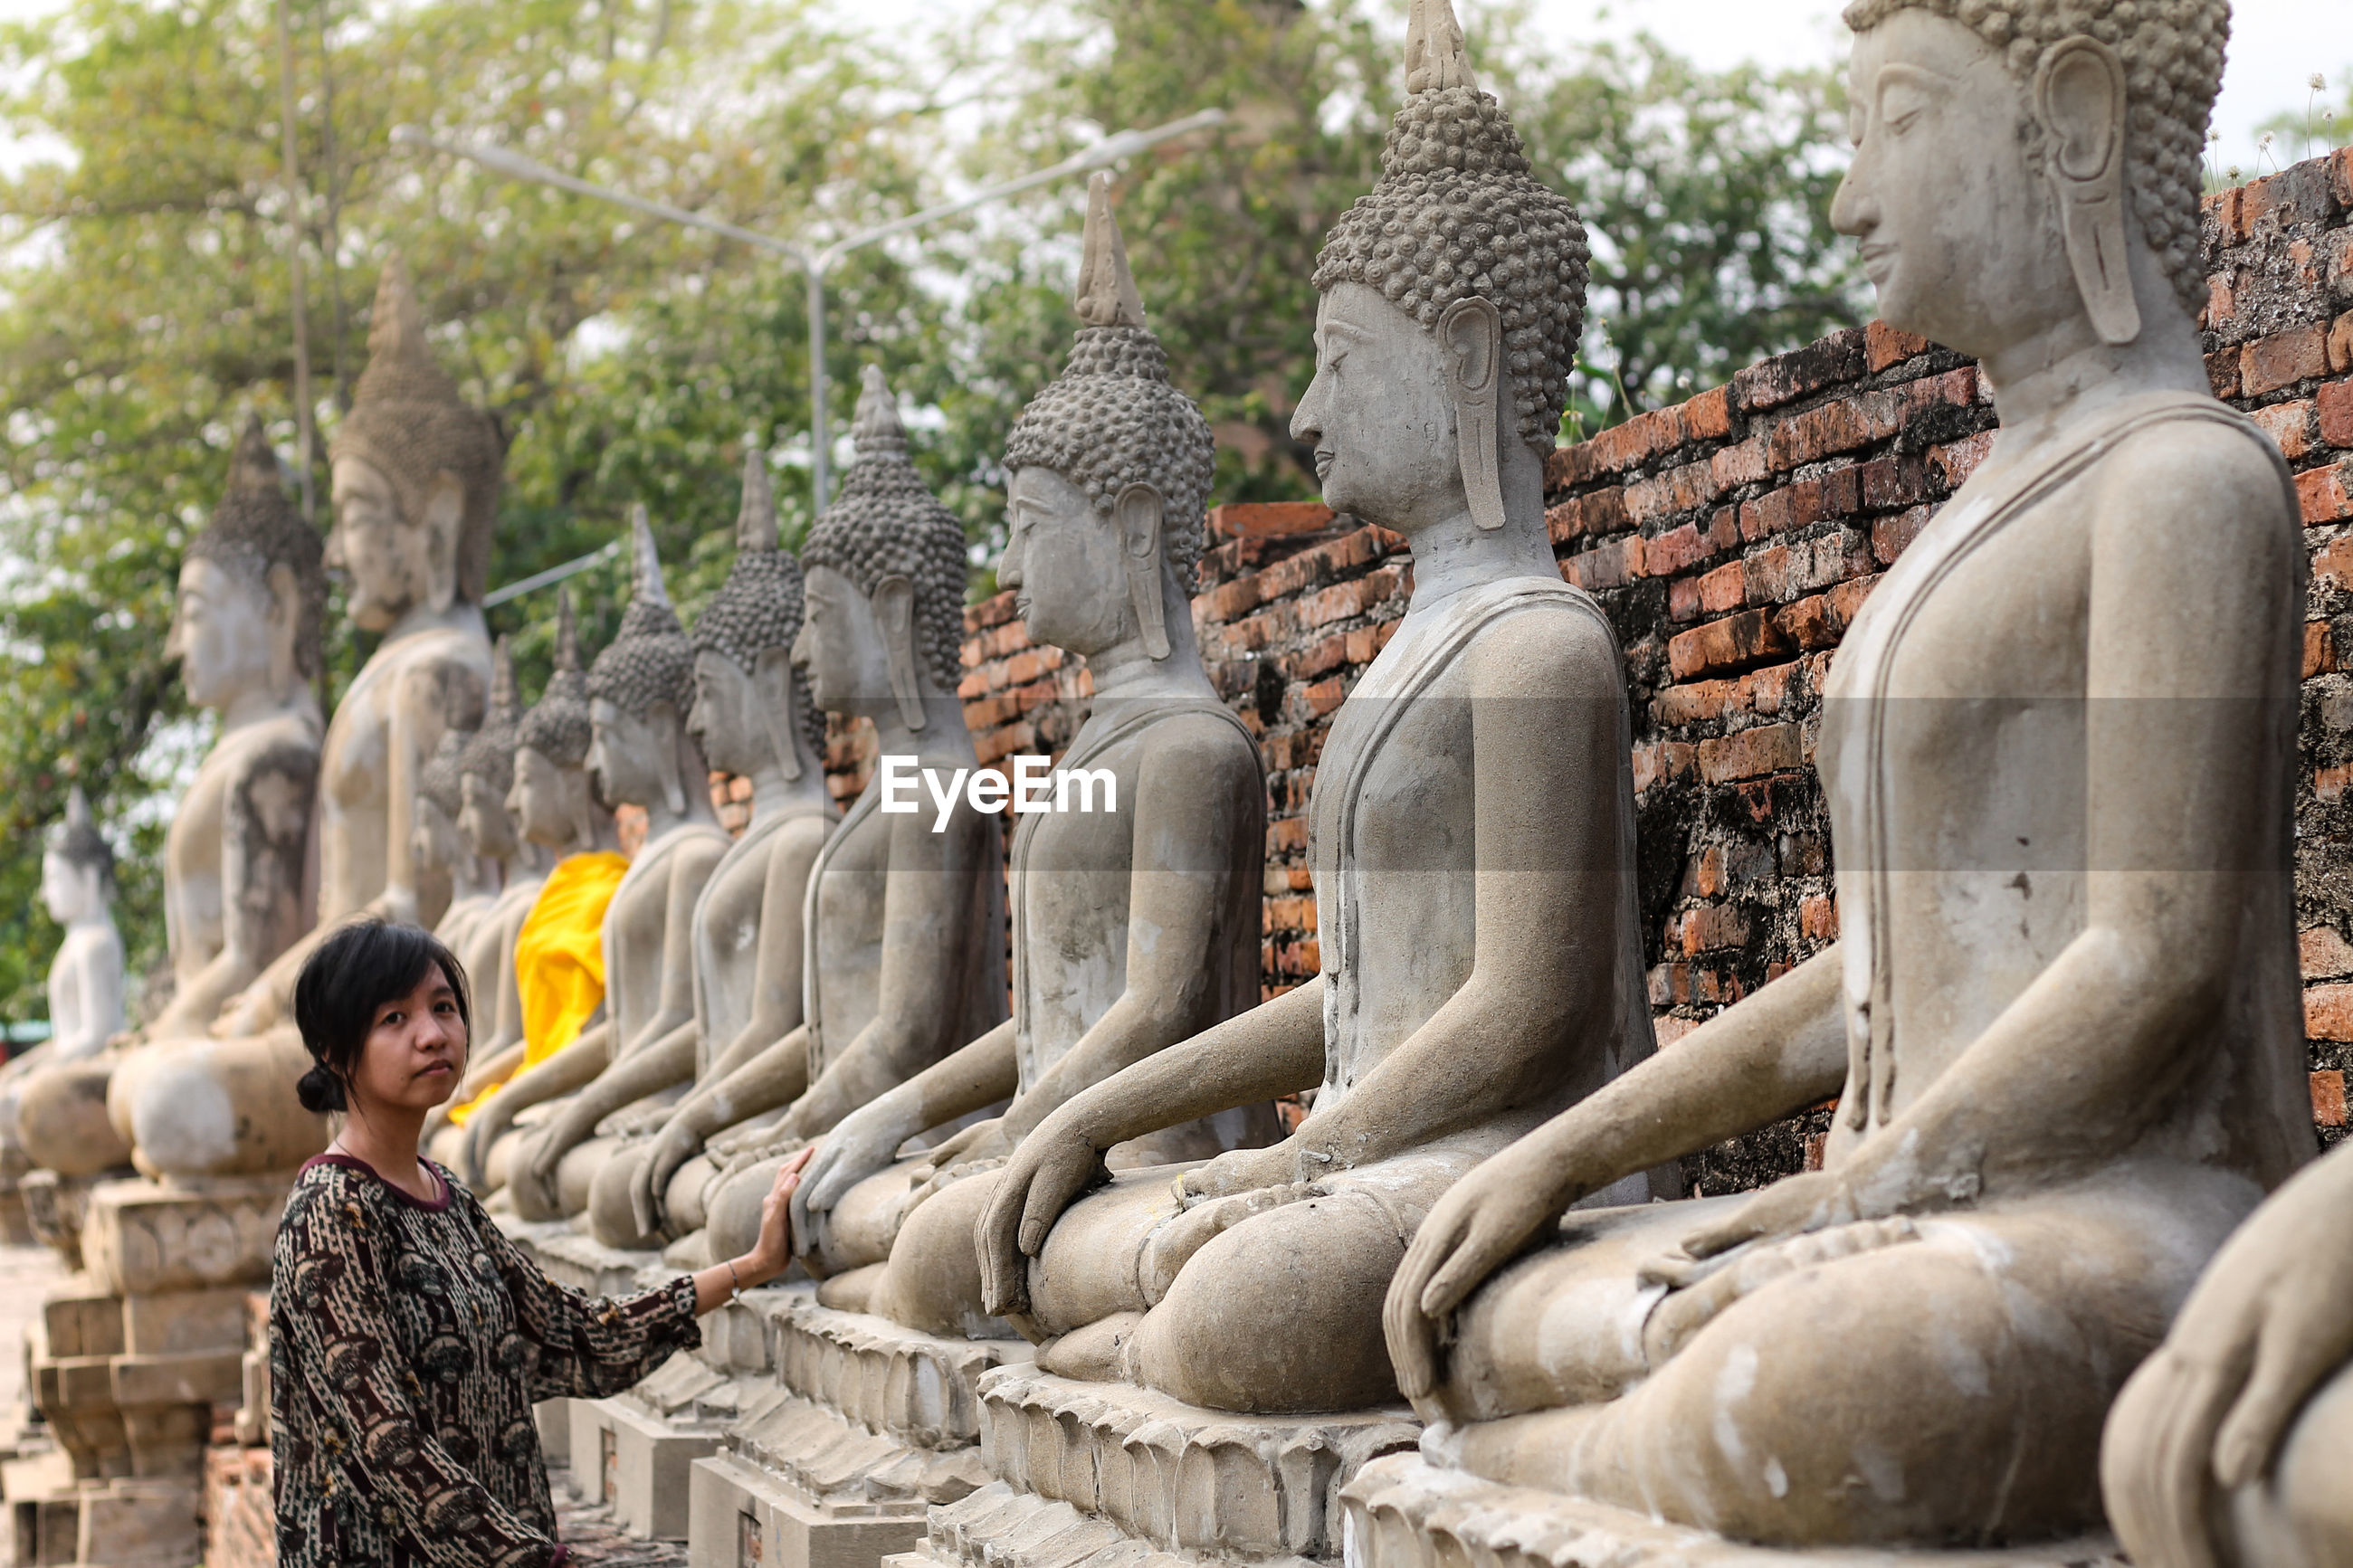 Portrait of mid adult woman standing by buddha statues